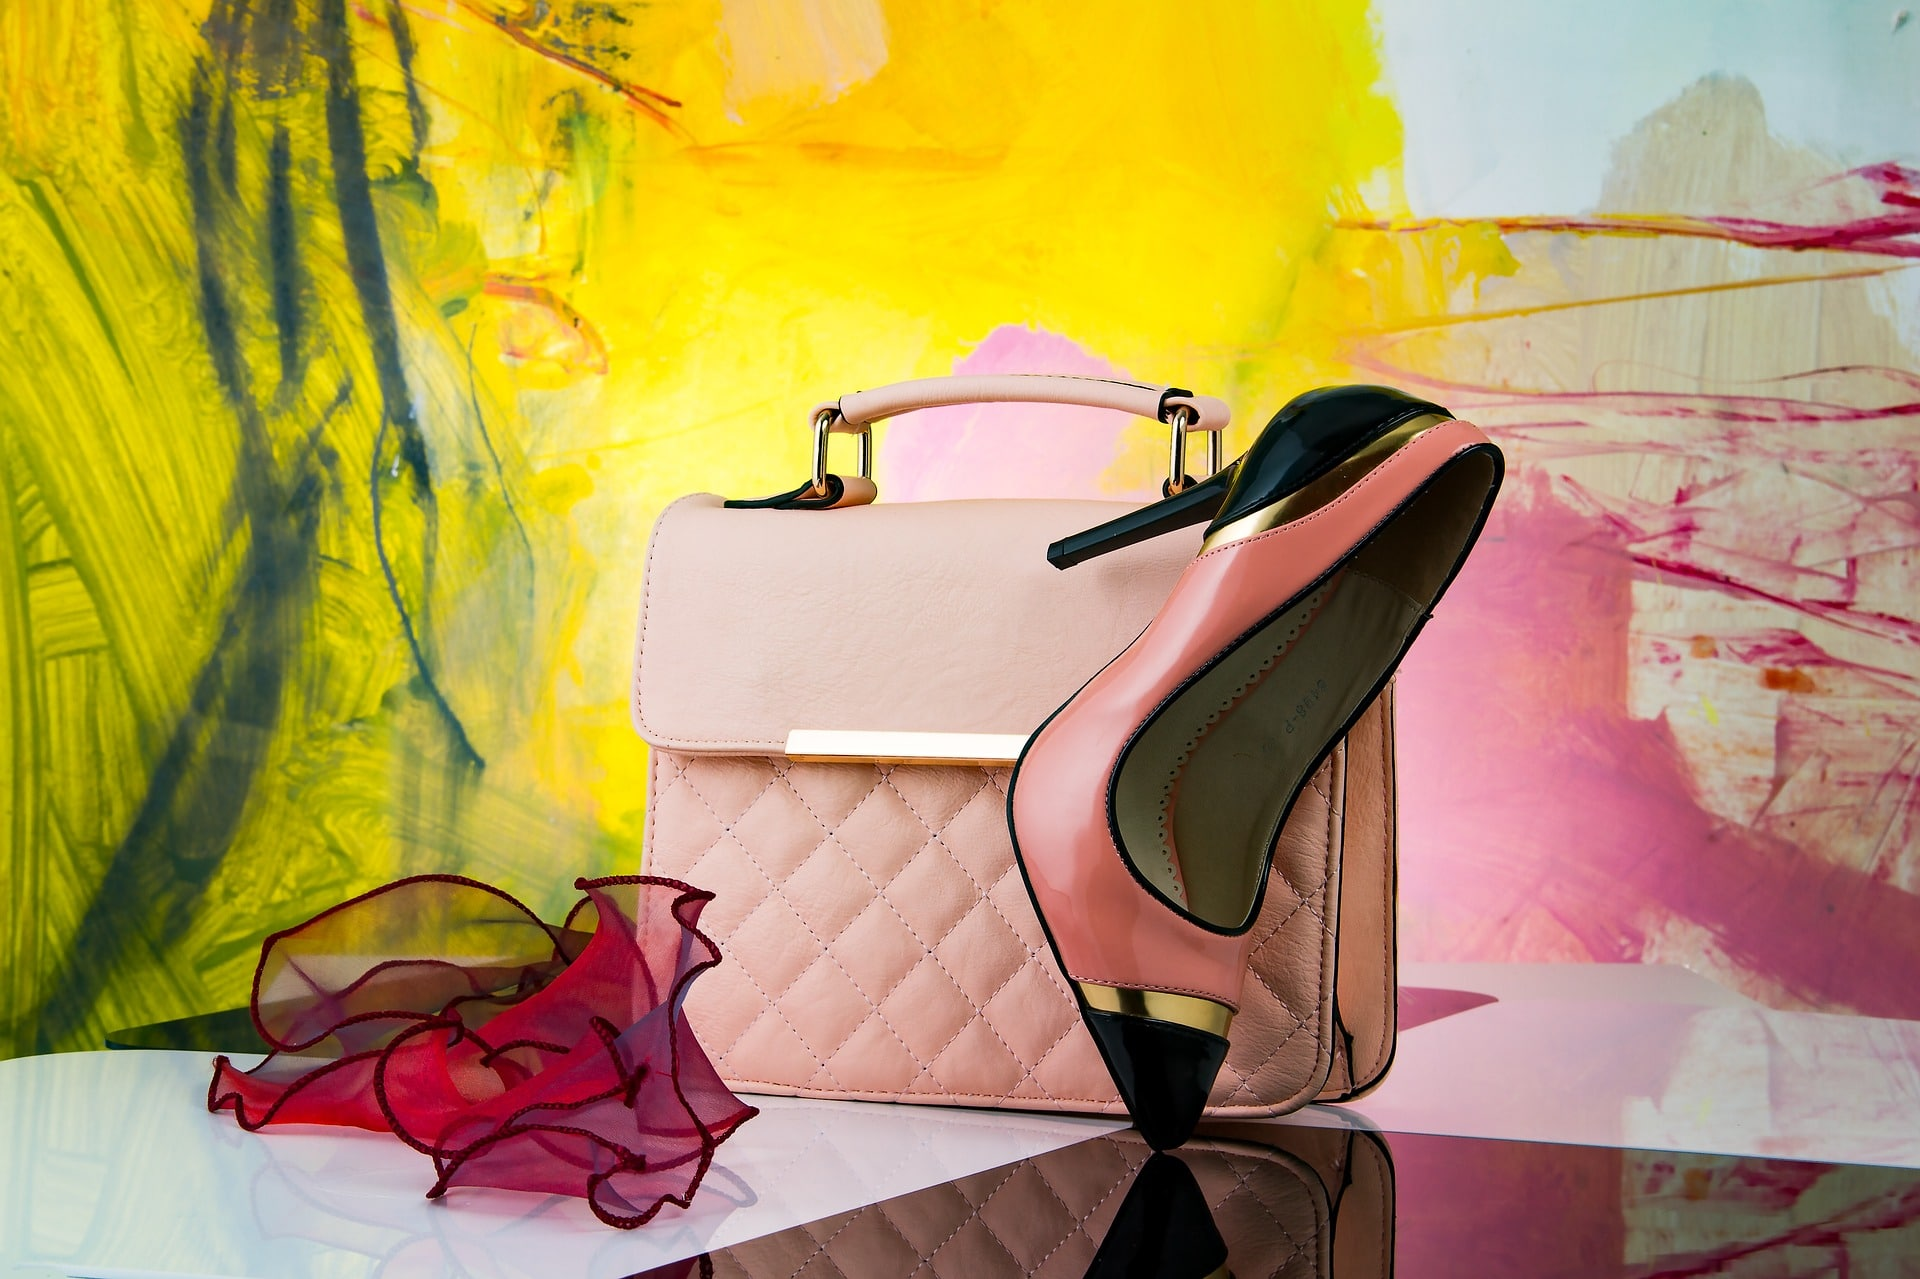 A pink designer handbag sits on a glossy table next to a stiletto and ruffled fabric